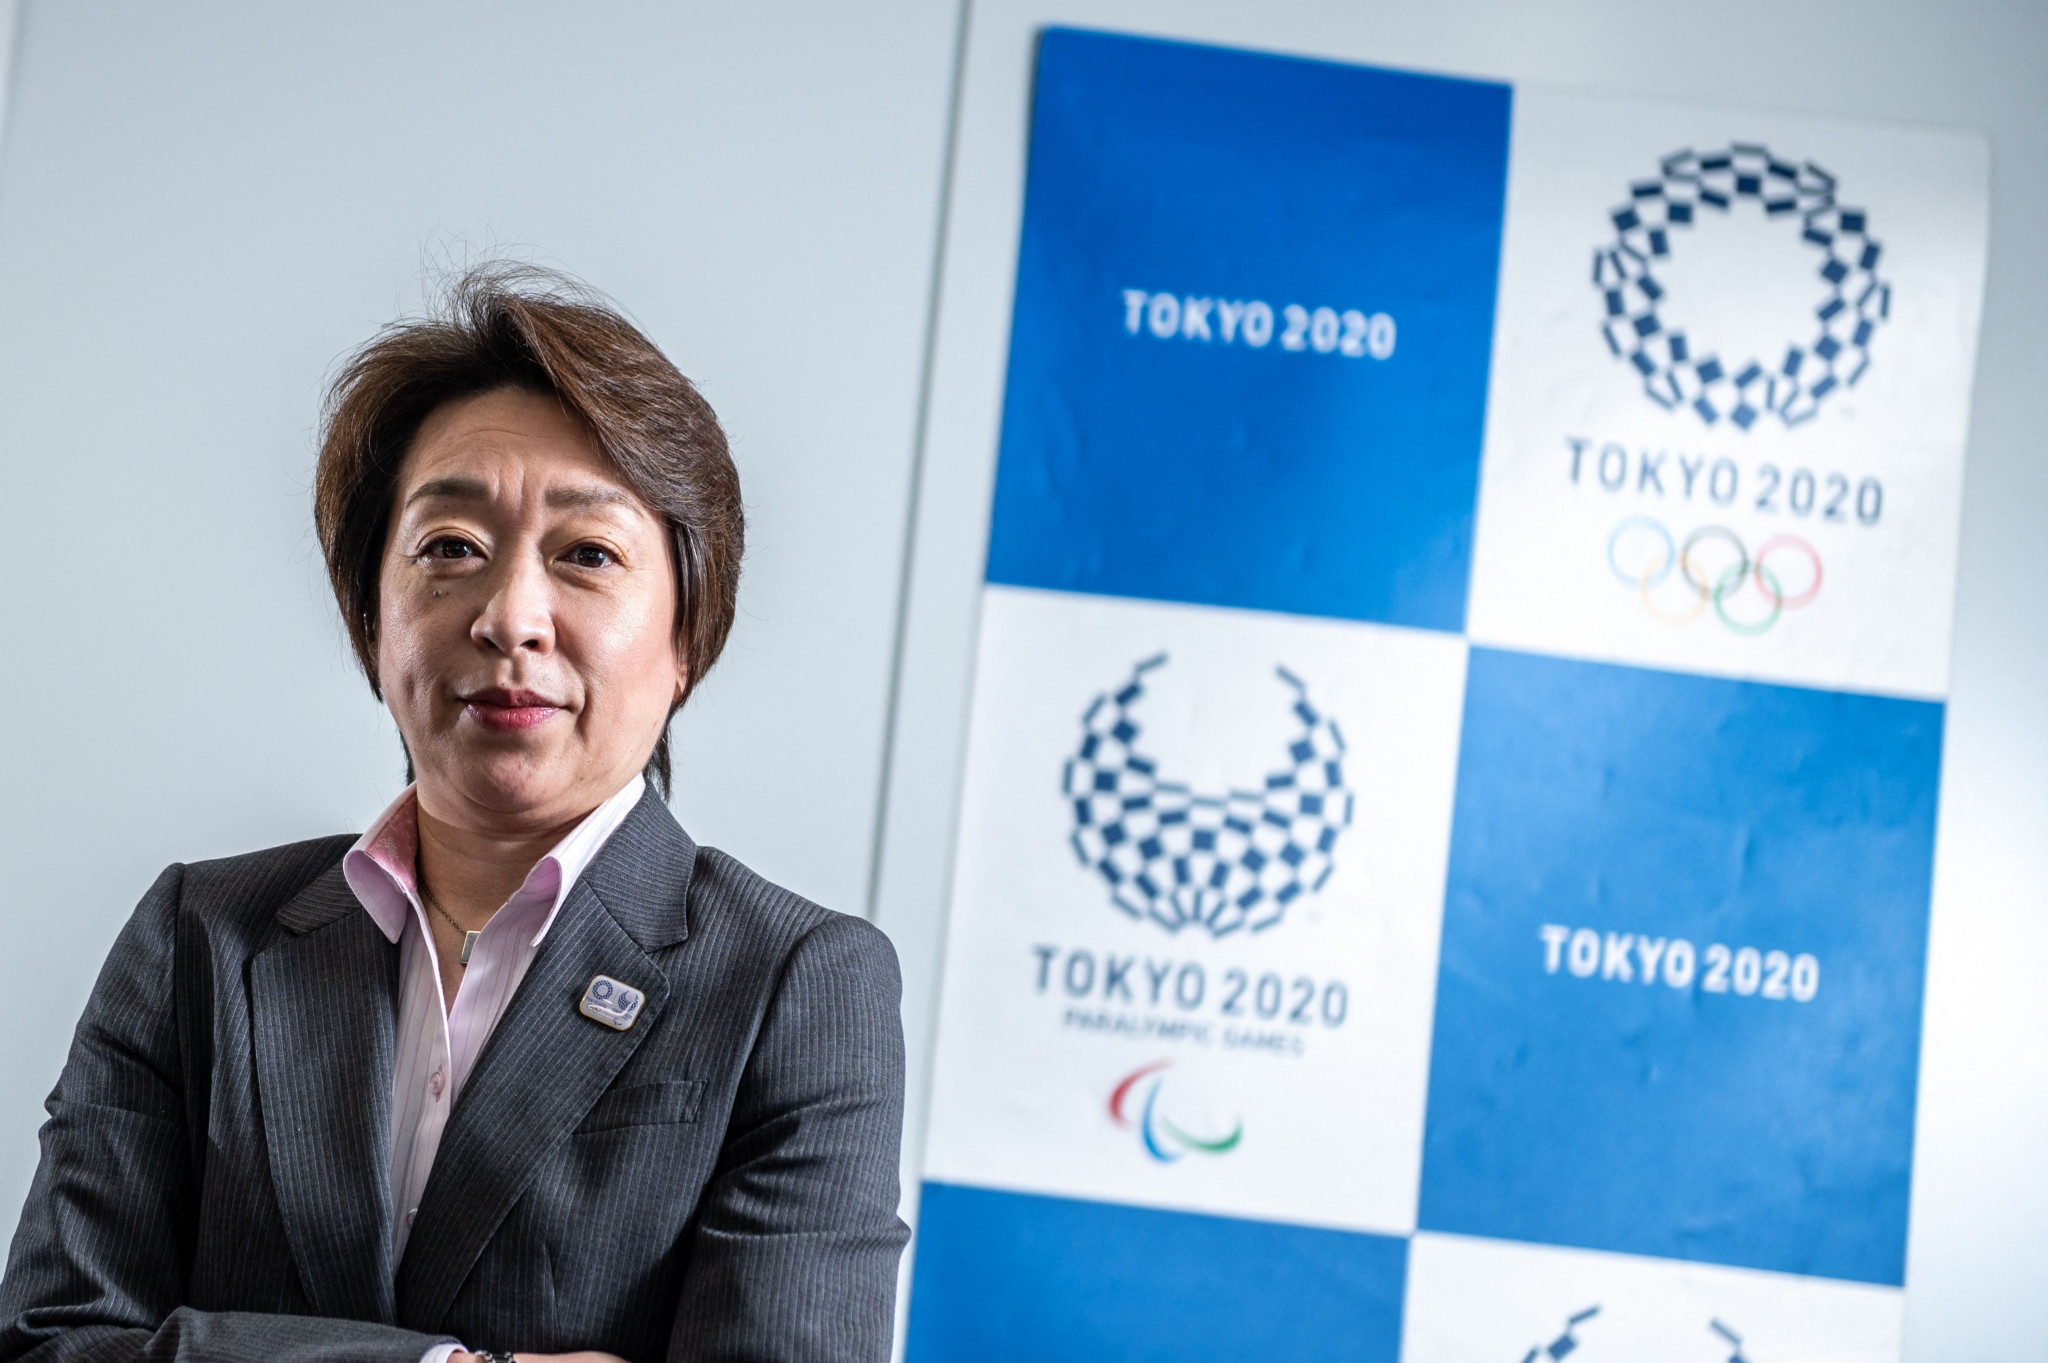 Hashimoto acknowledges Tokyo 2020 could take place behind closed doors